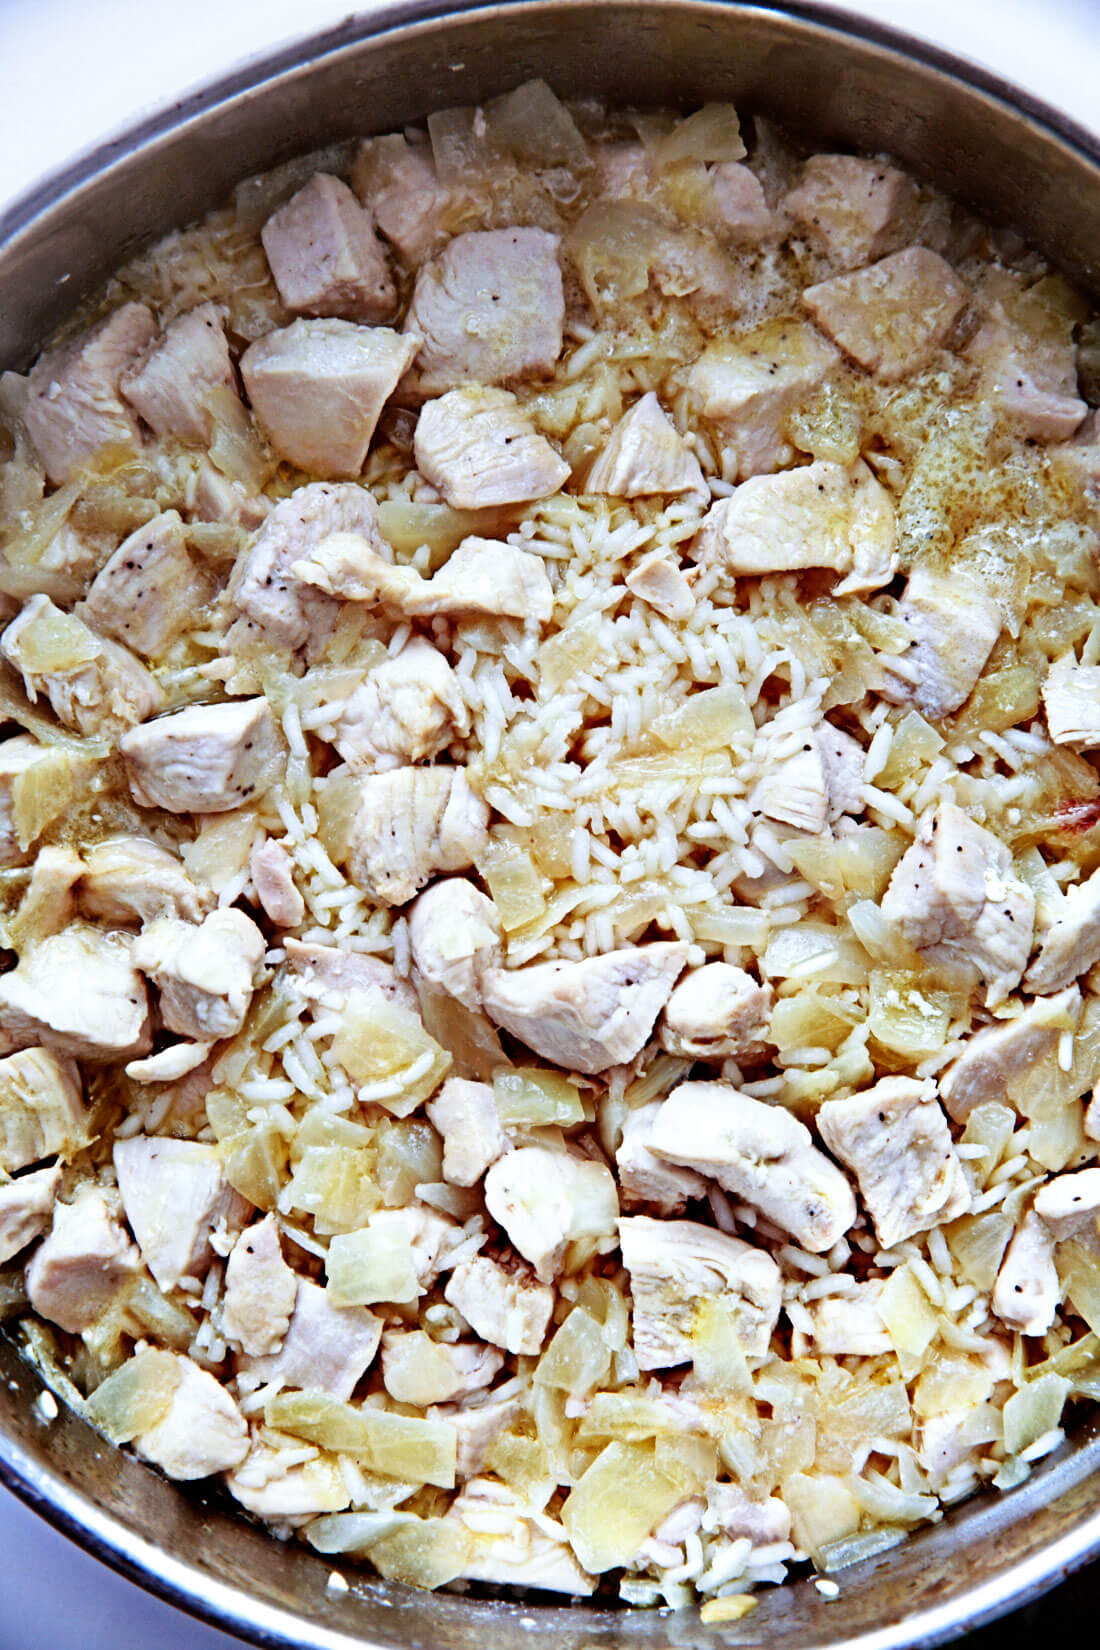 Chicken and Rice - after the rice has cooked